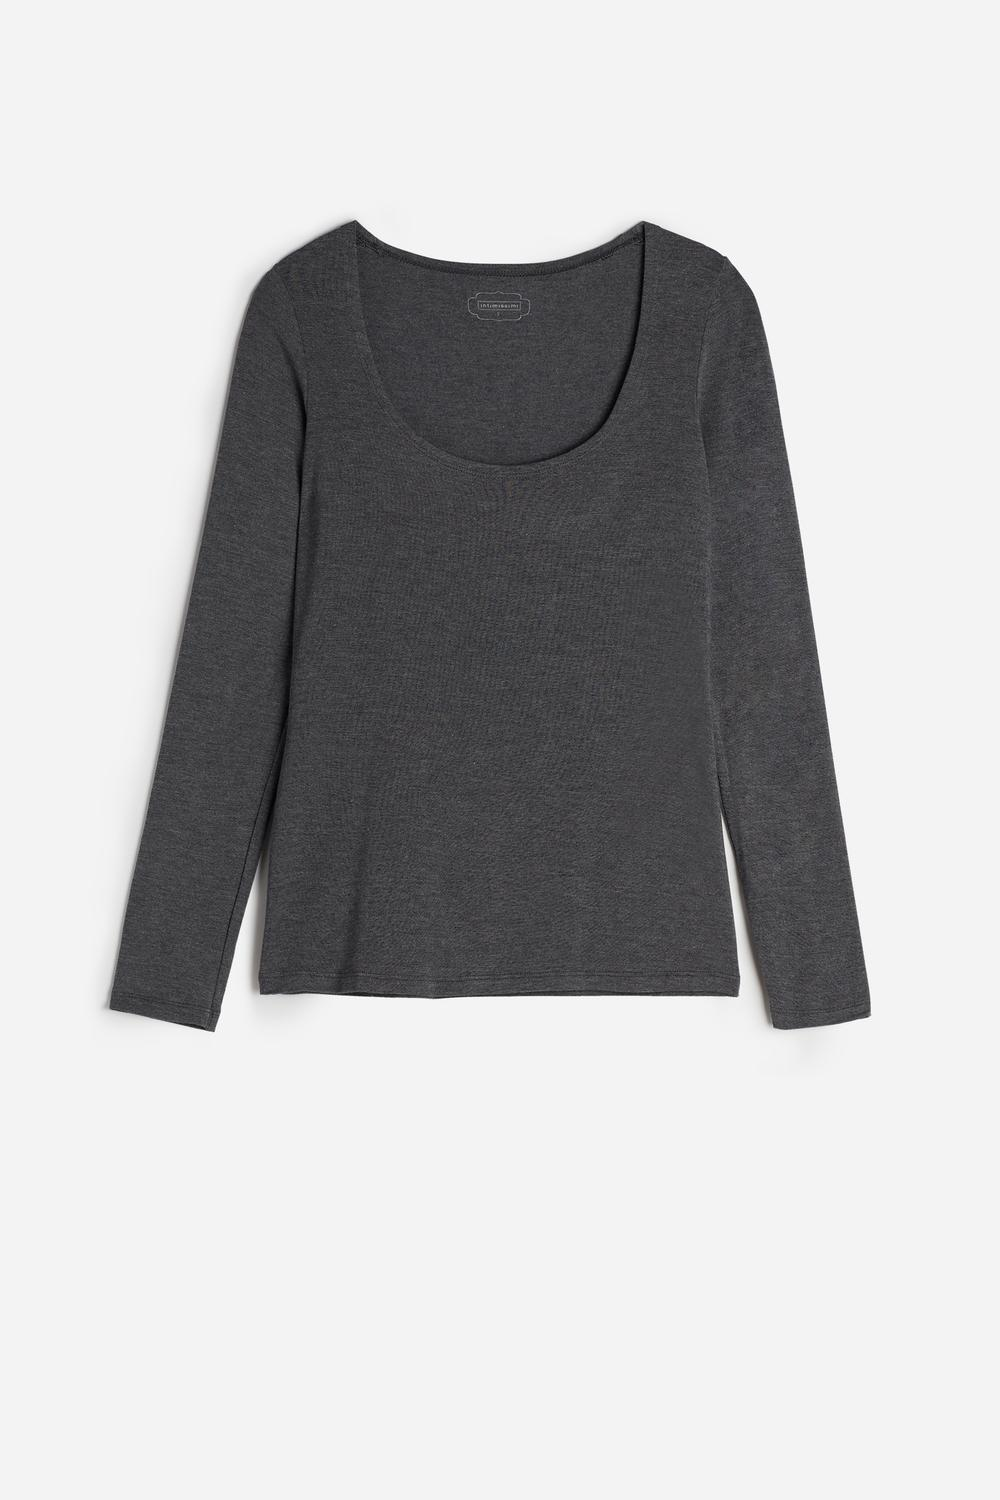 Long-Sleeve Scoop-Neck Micromodal Top